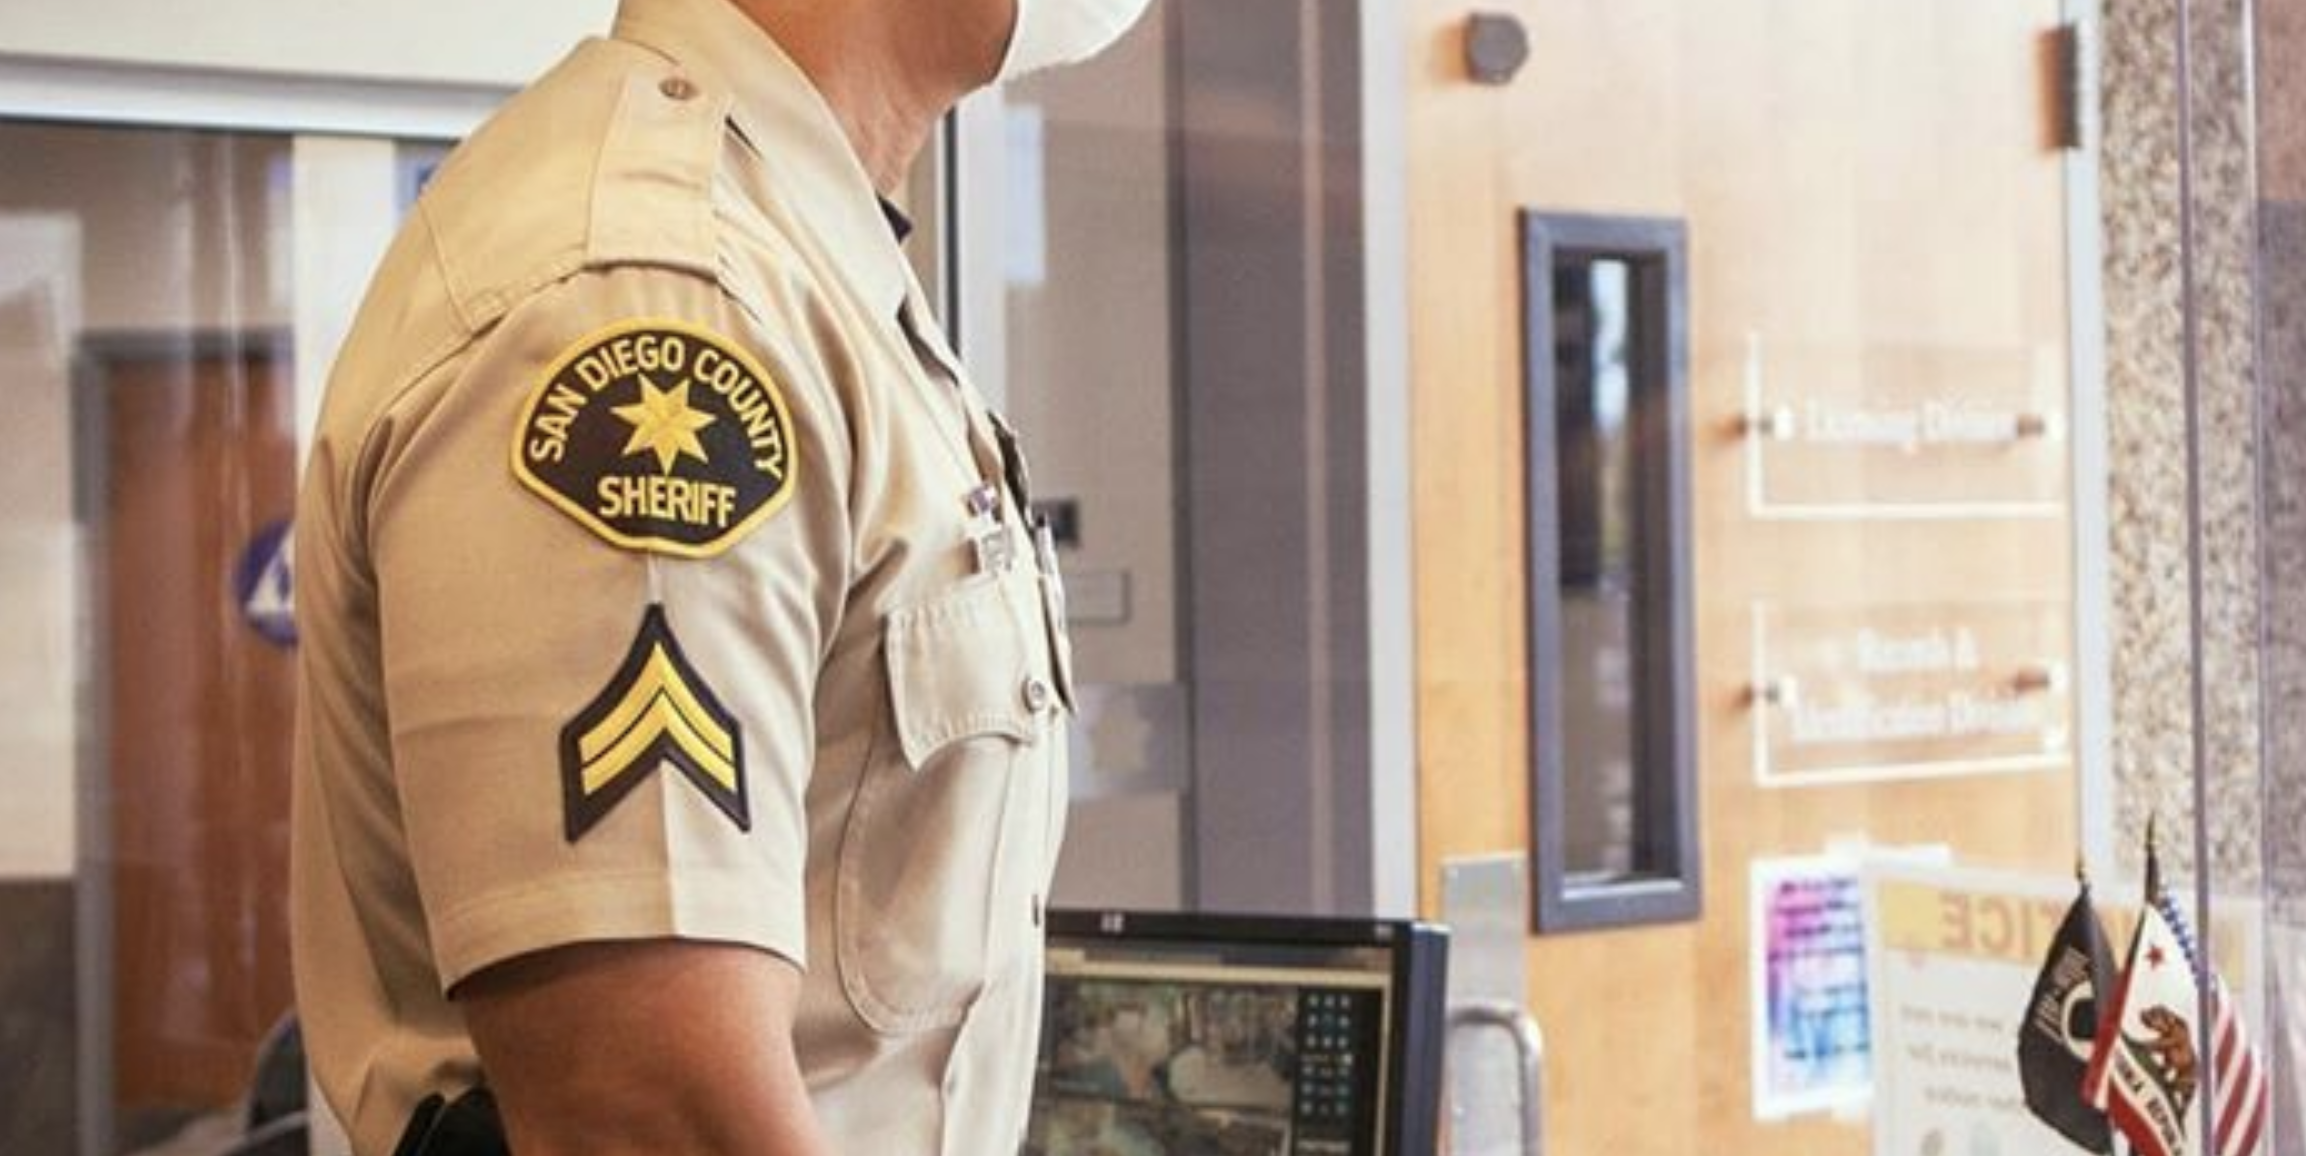 The San Diego County Sheriff's Department deputy uniform is seen in an undated file photo shared by the agency.